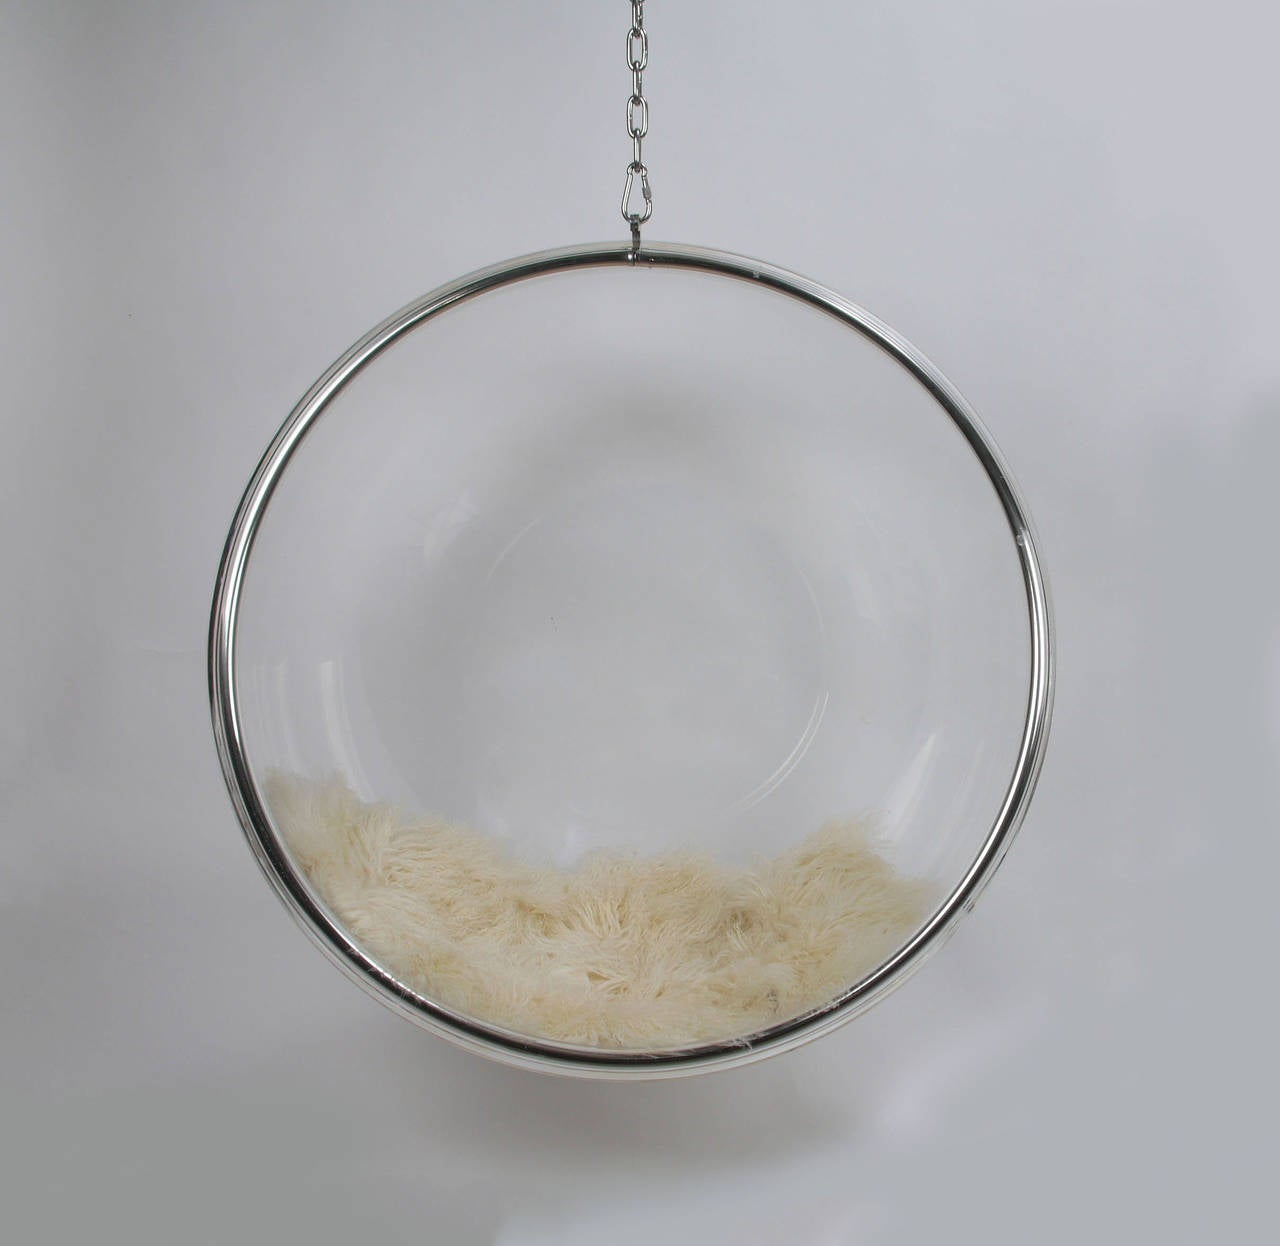 perspex hanging chair fuzzy feet gliders eero aarnio by adelta lucite bubble for sale